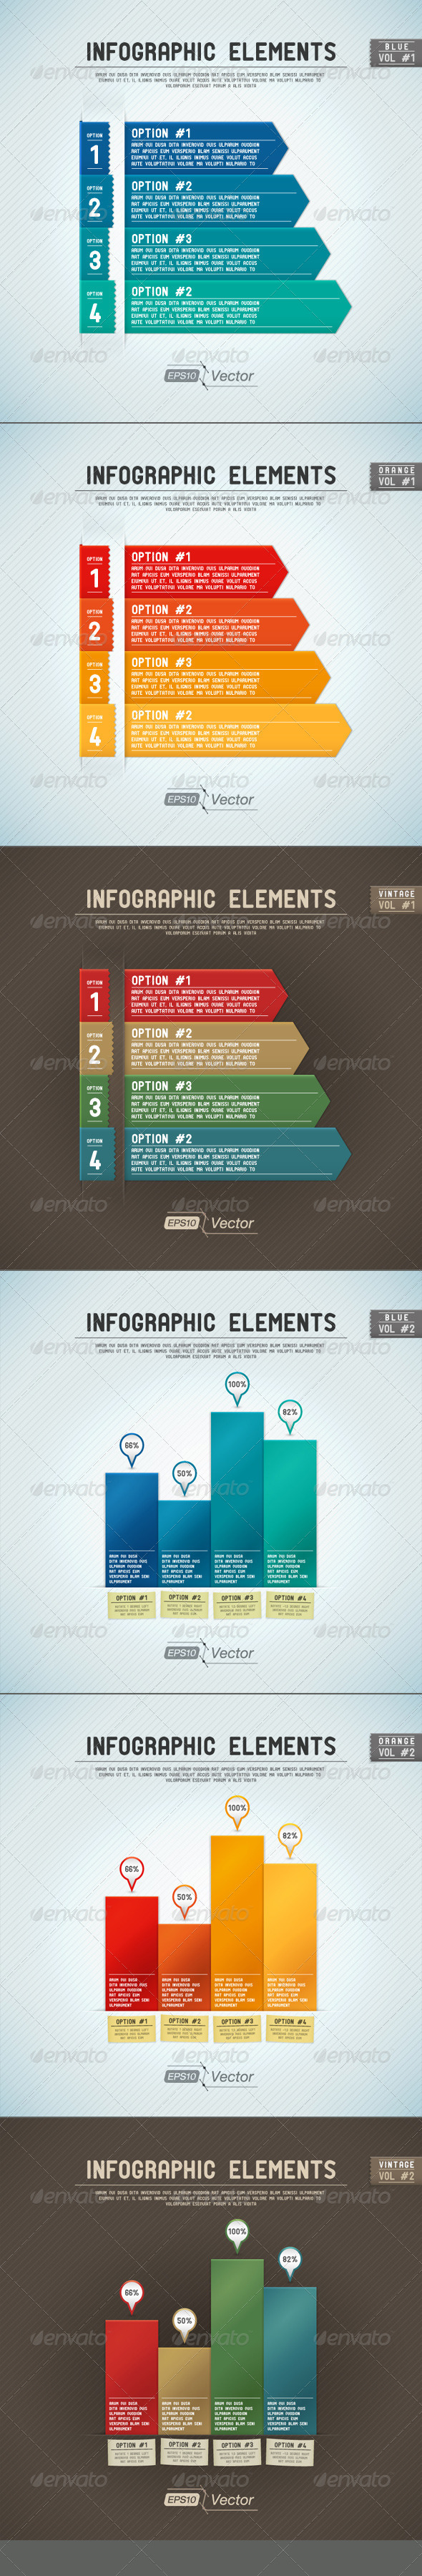 Infographic Elements - Two Kind Of Bar Graph - Infographics